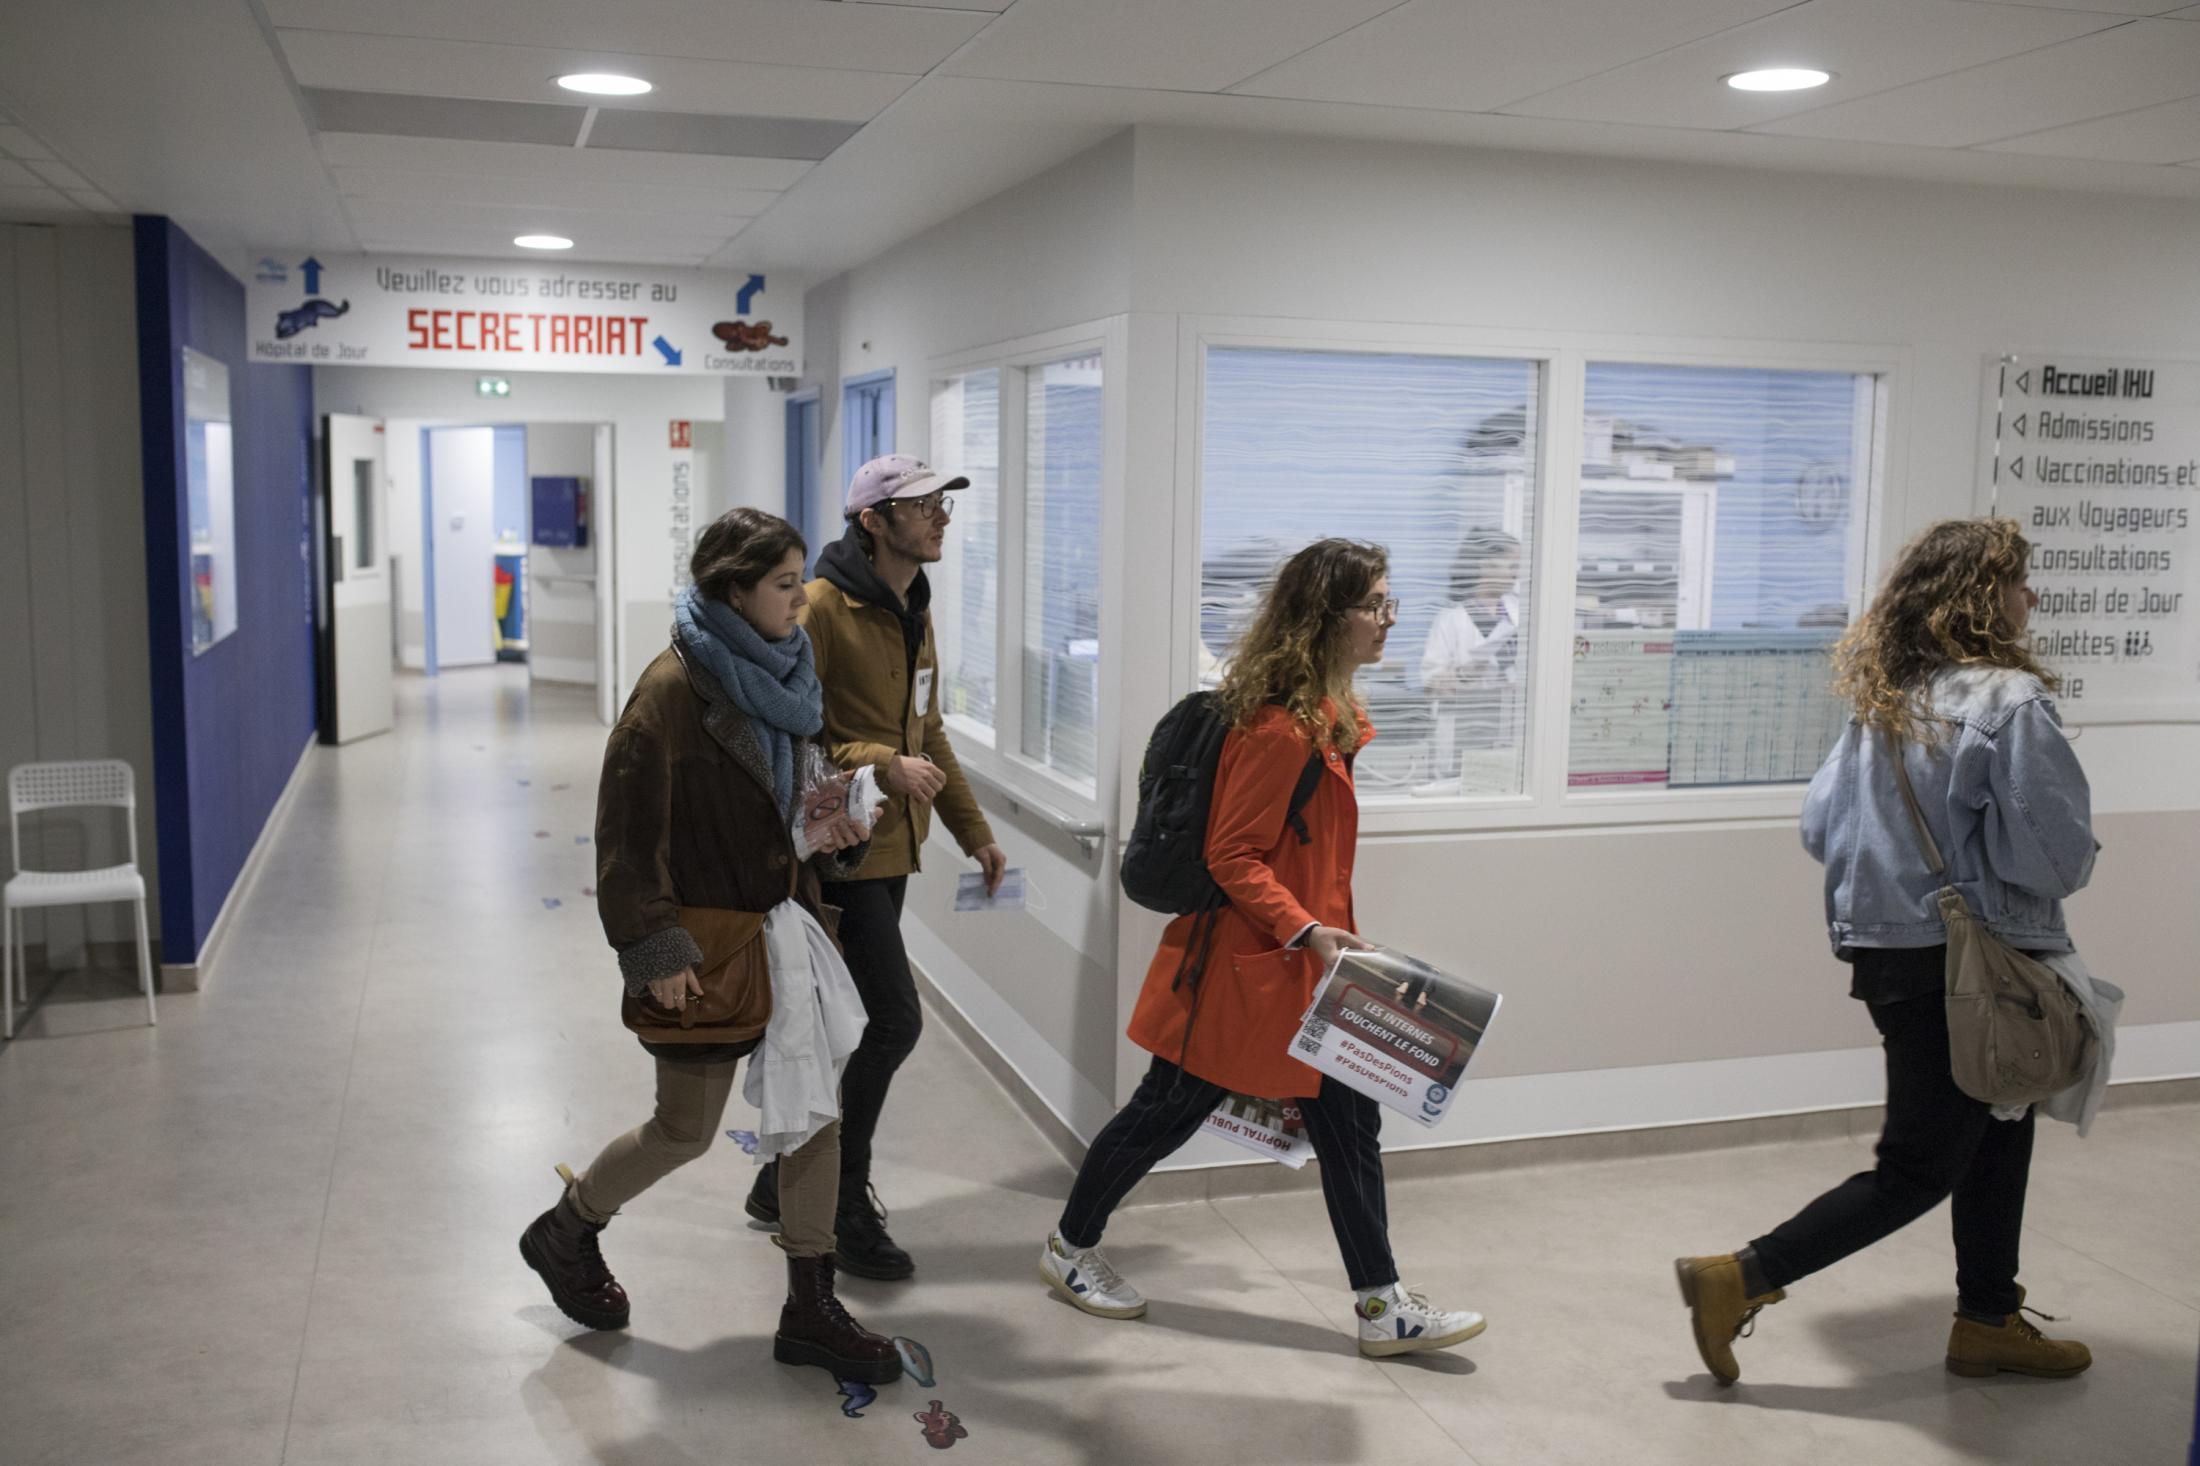 Interns of the Autonomous Union for Interns of the Hospitals of Marseille canvass La Timone hospital with pamphlets and posters, looking to inform interns on shift about their working rights. Dec 16, 2019.